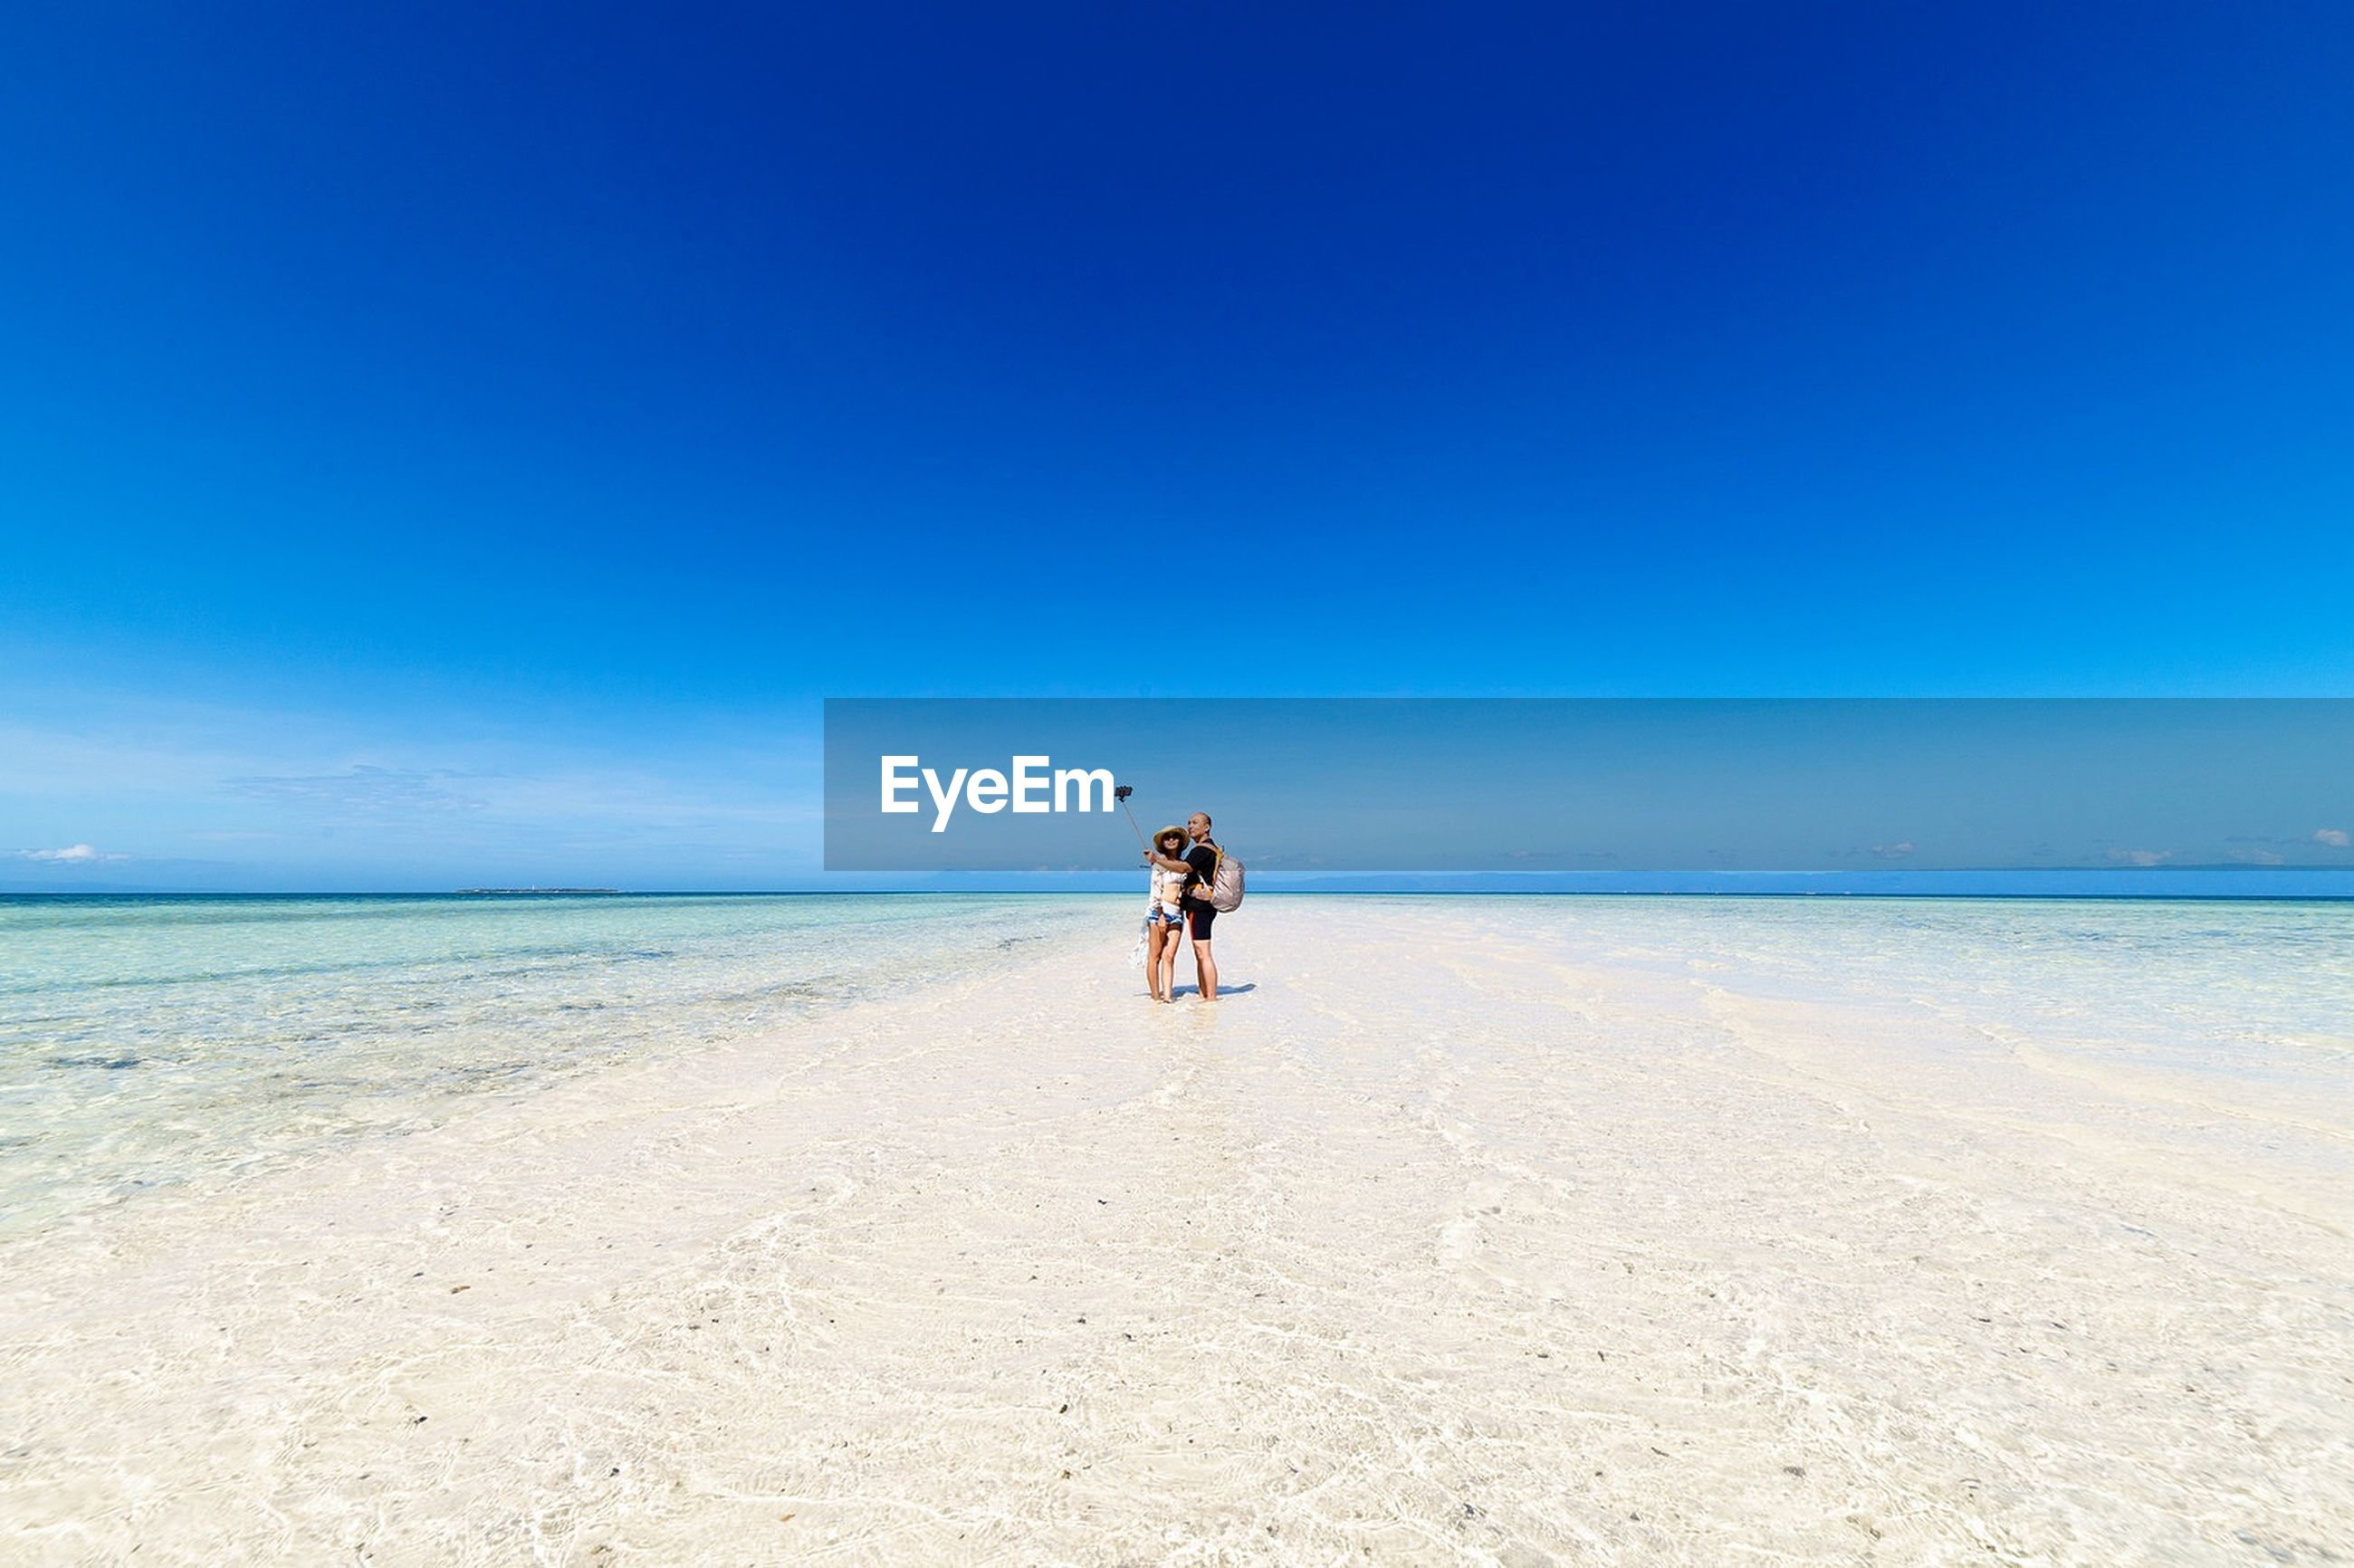 View of couple on beach against clear blue sky